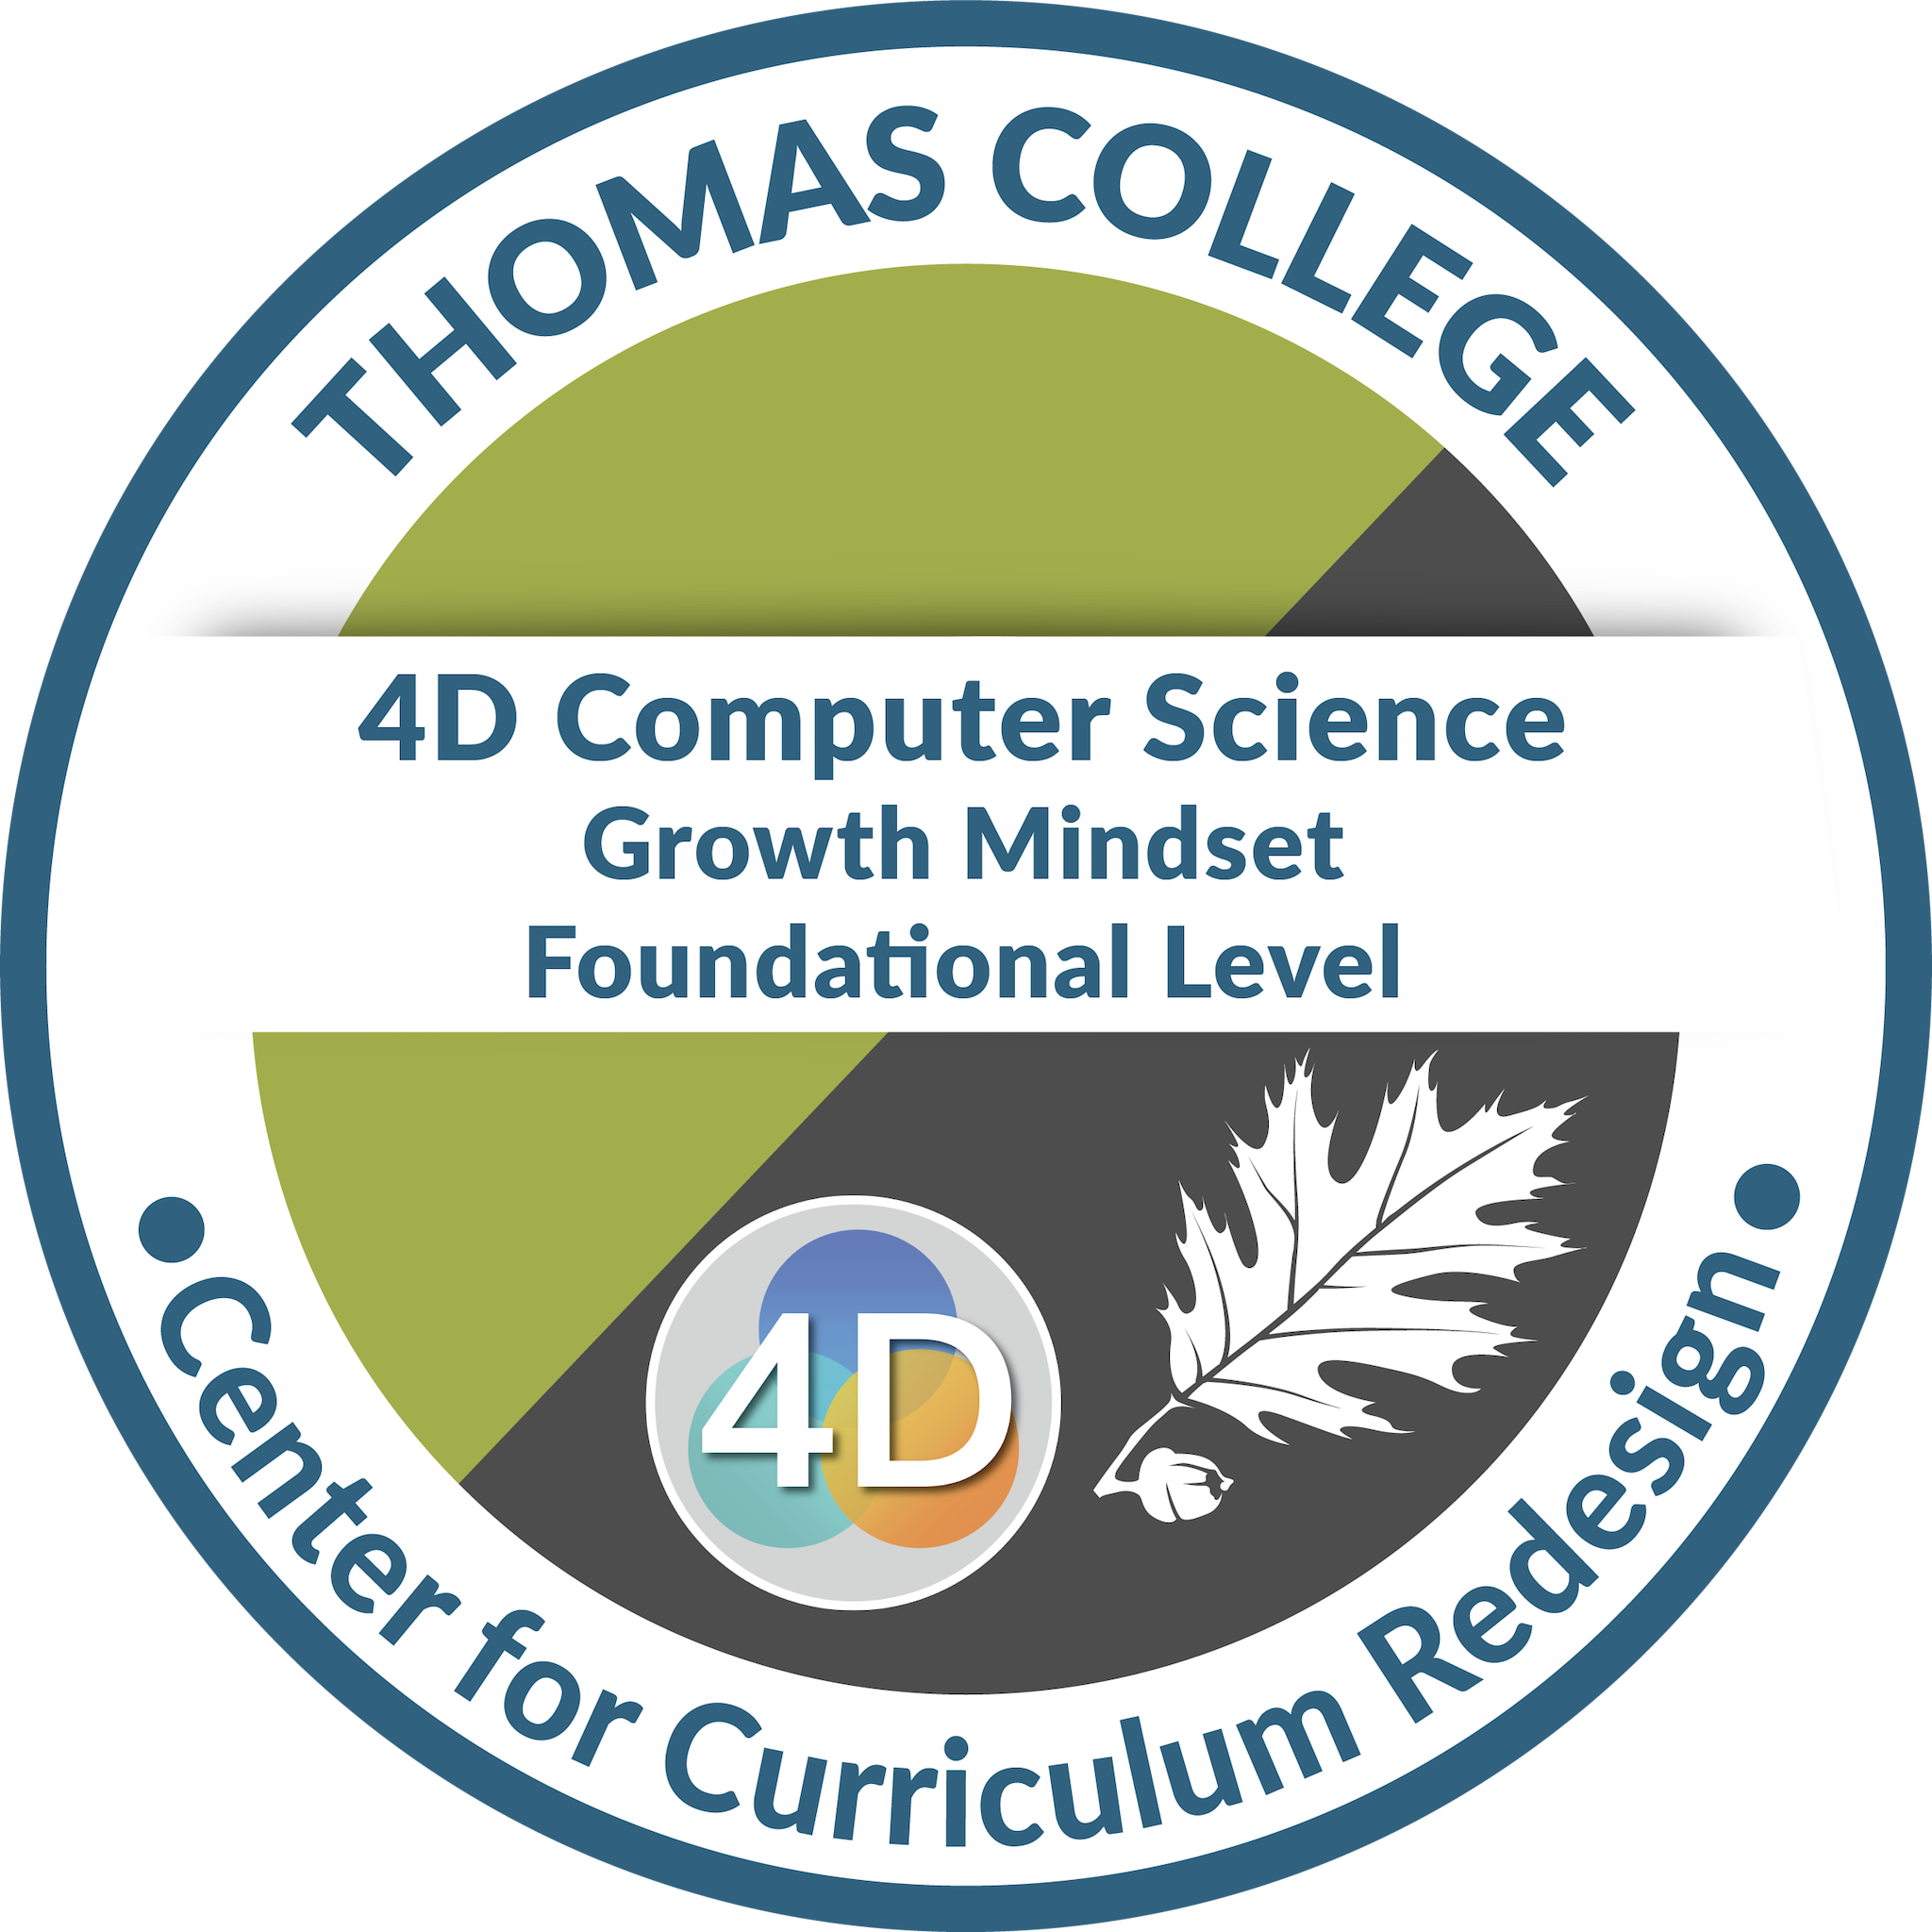 4D Computer Science: Growth Mindset